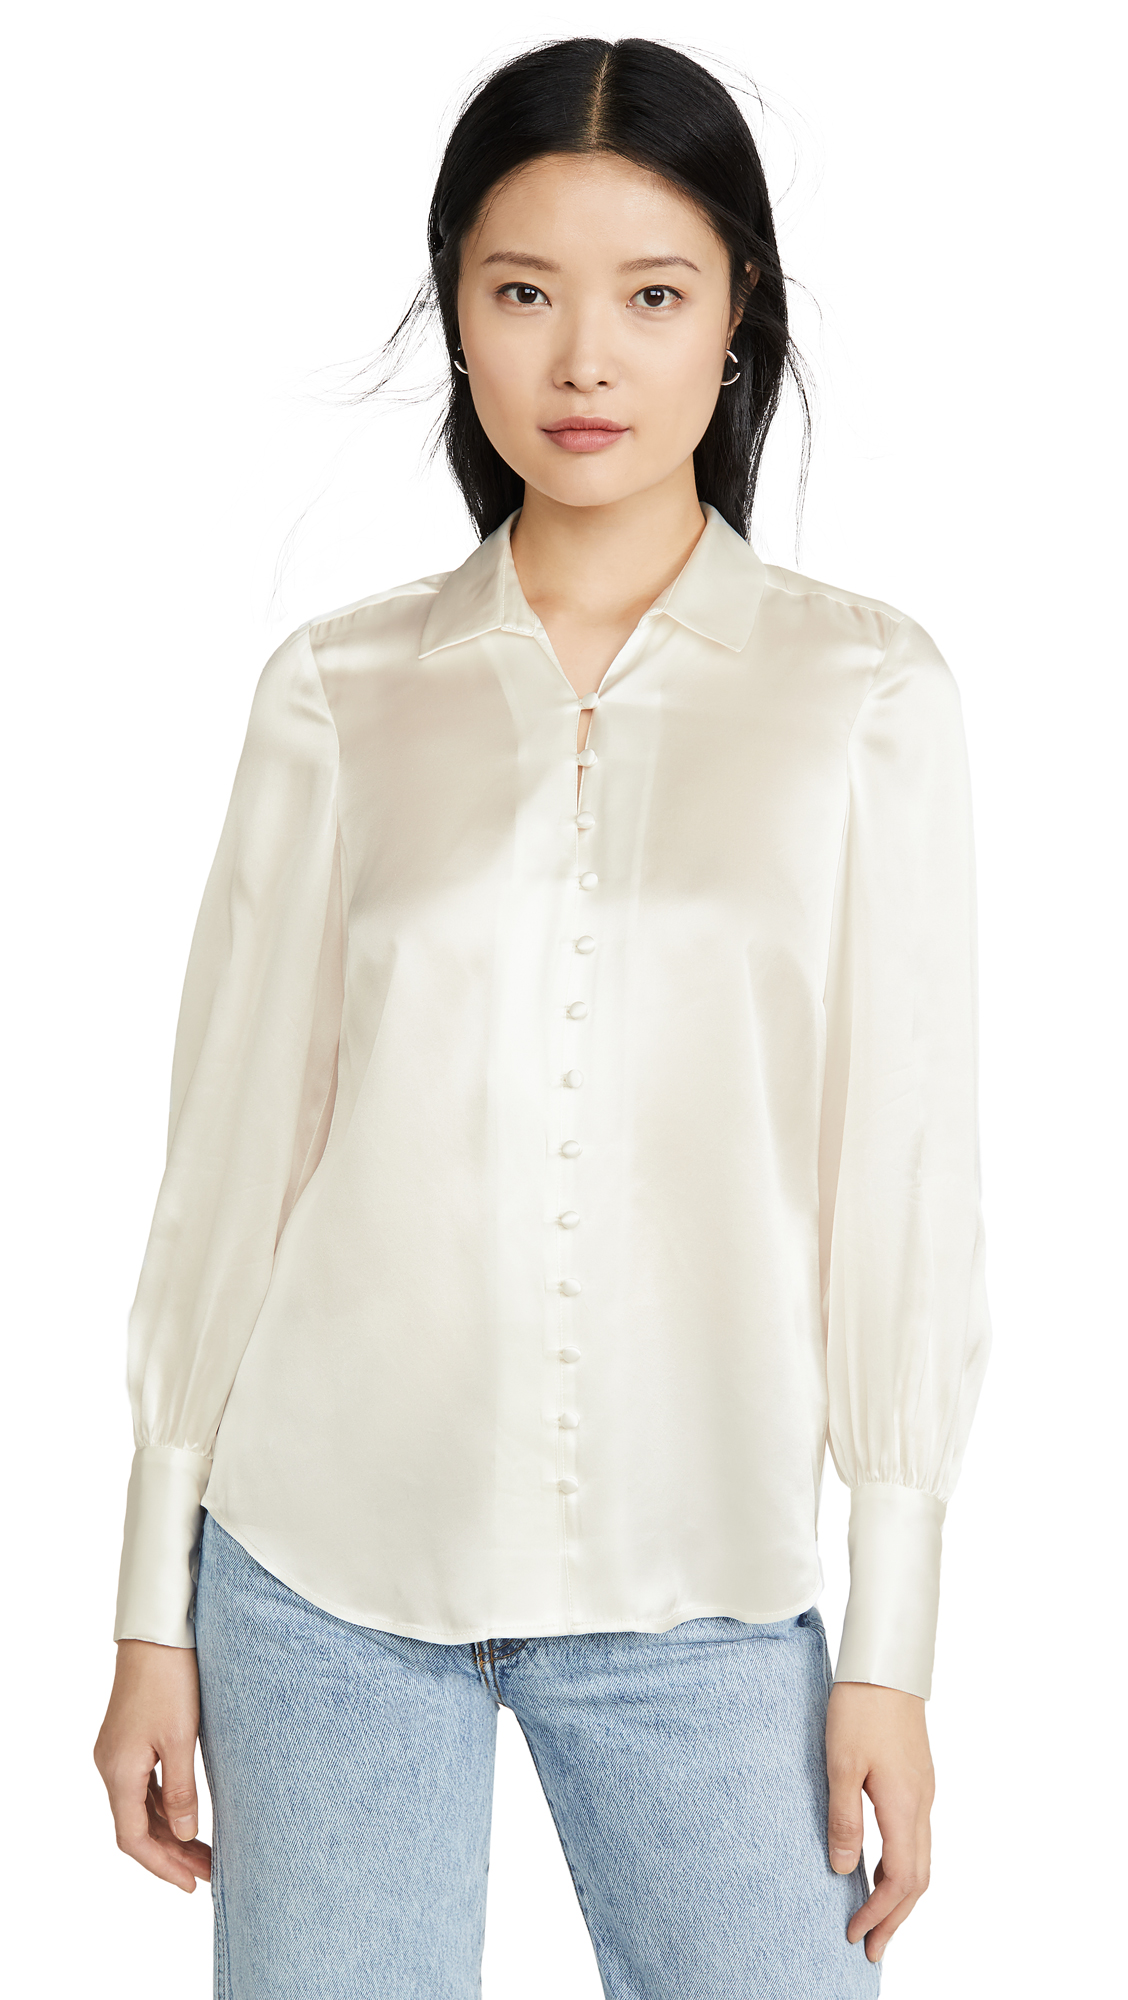 L'AGENCE Naomi Button Loop Blouse - 30% Off Sale